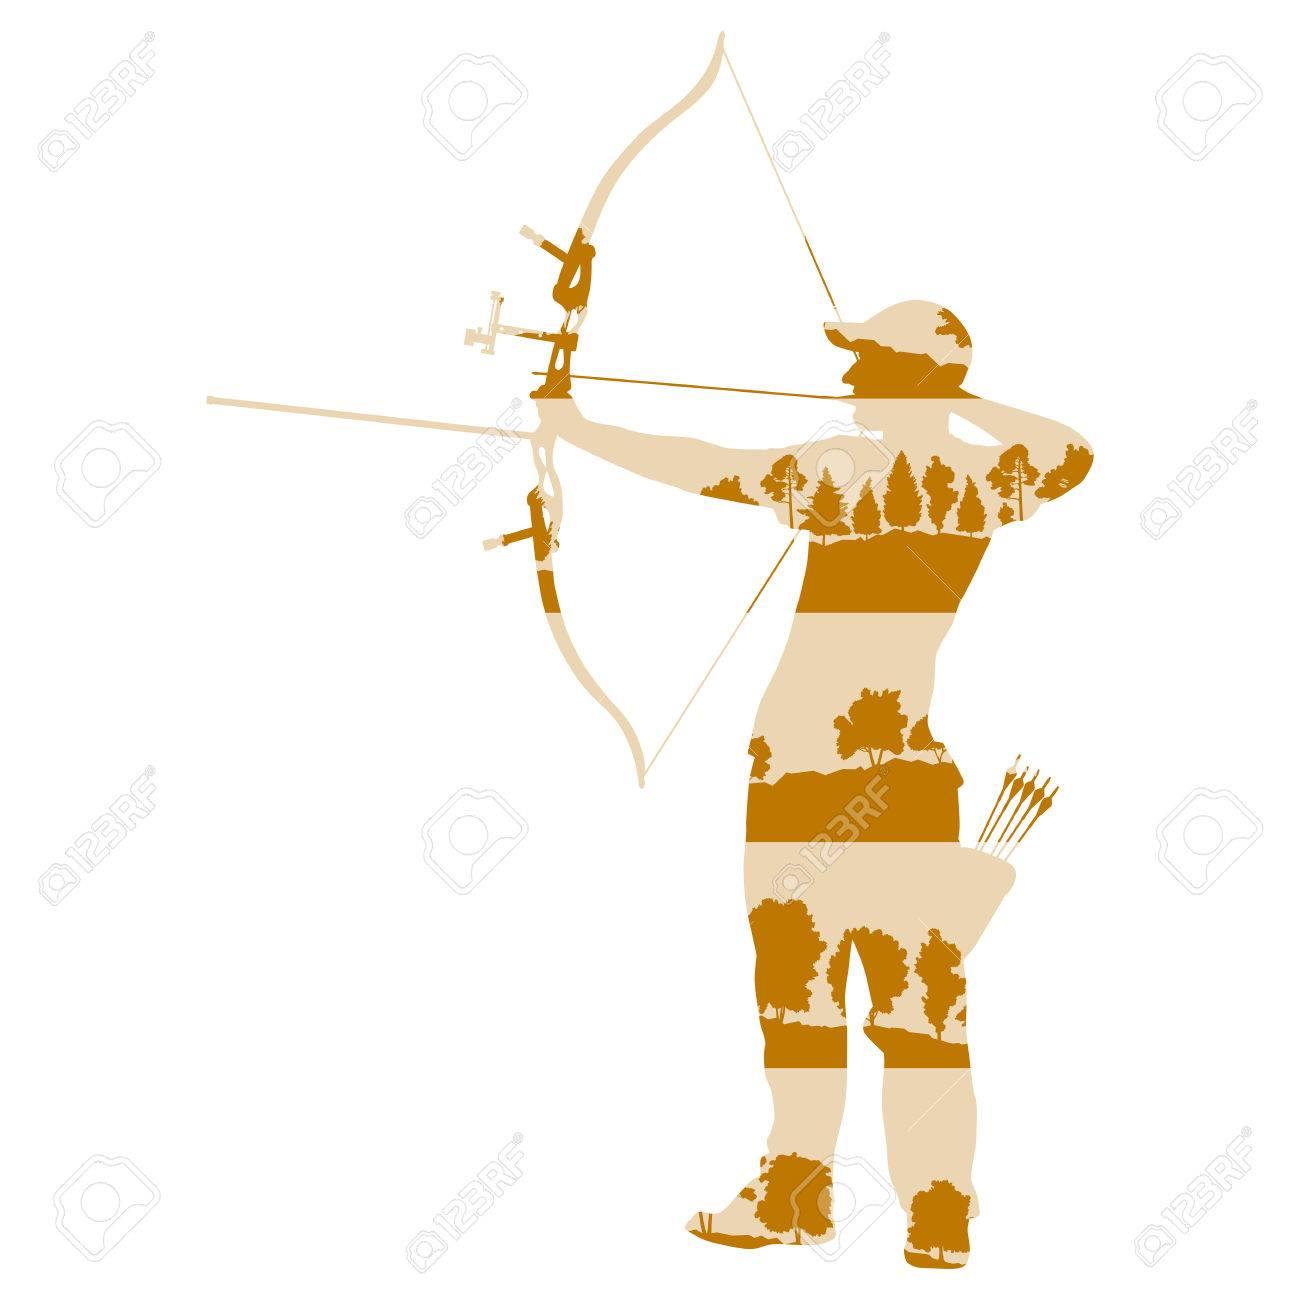 Free download clip art. Archery clipart abstract